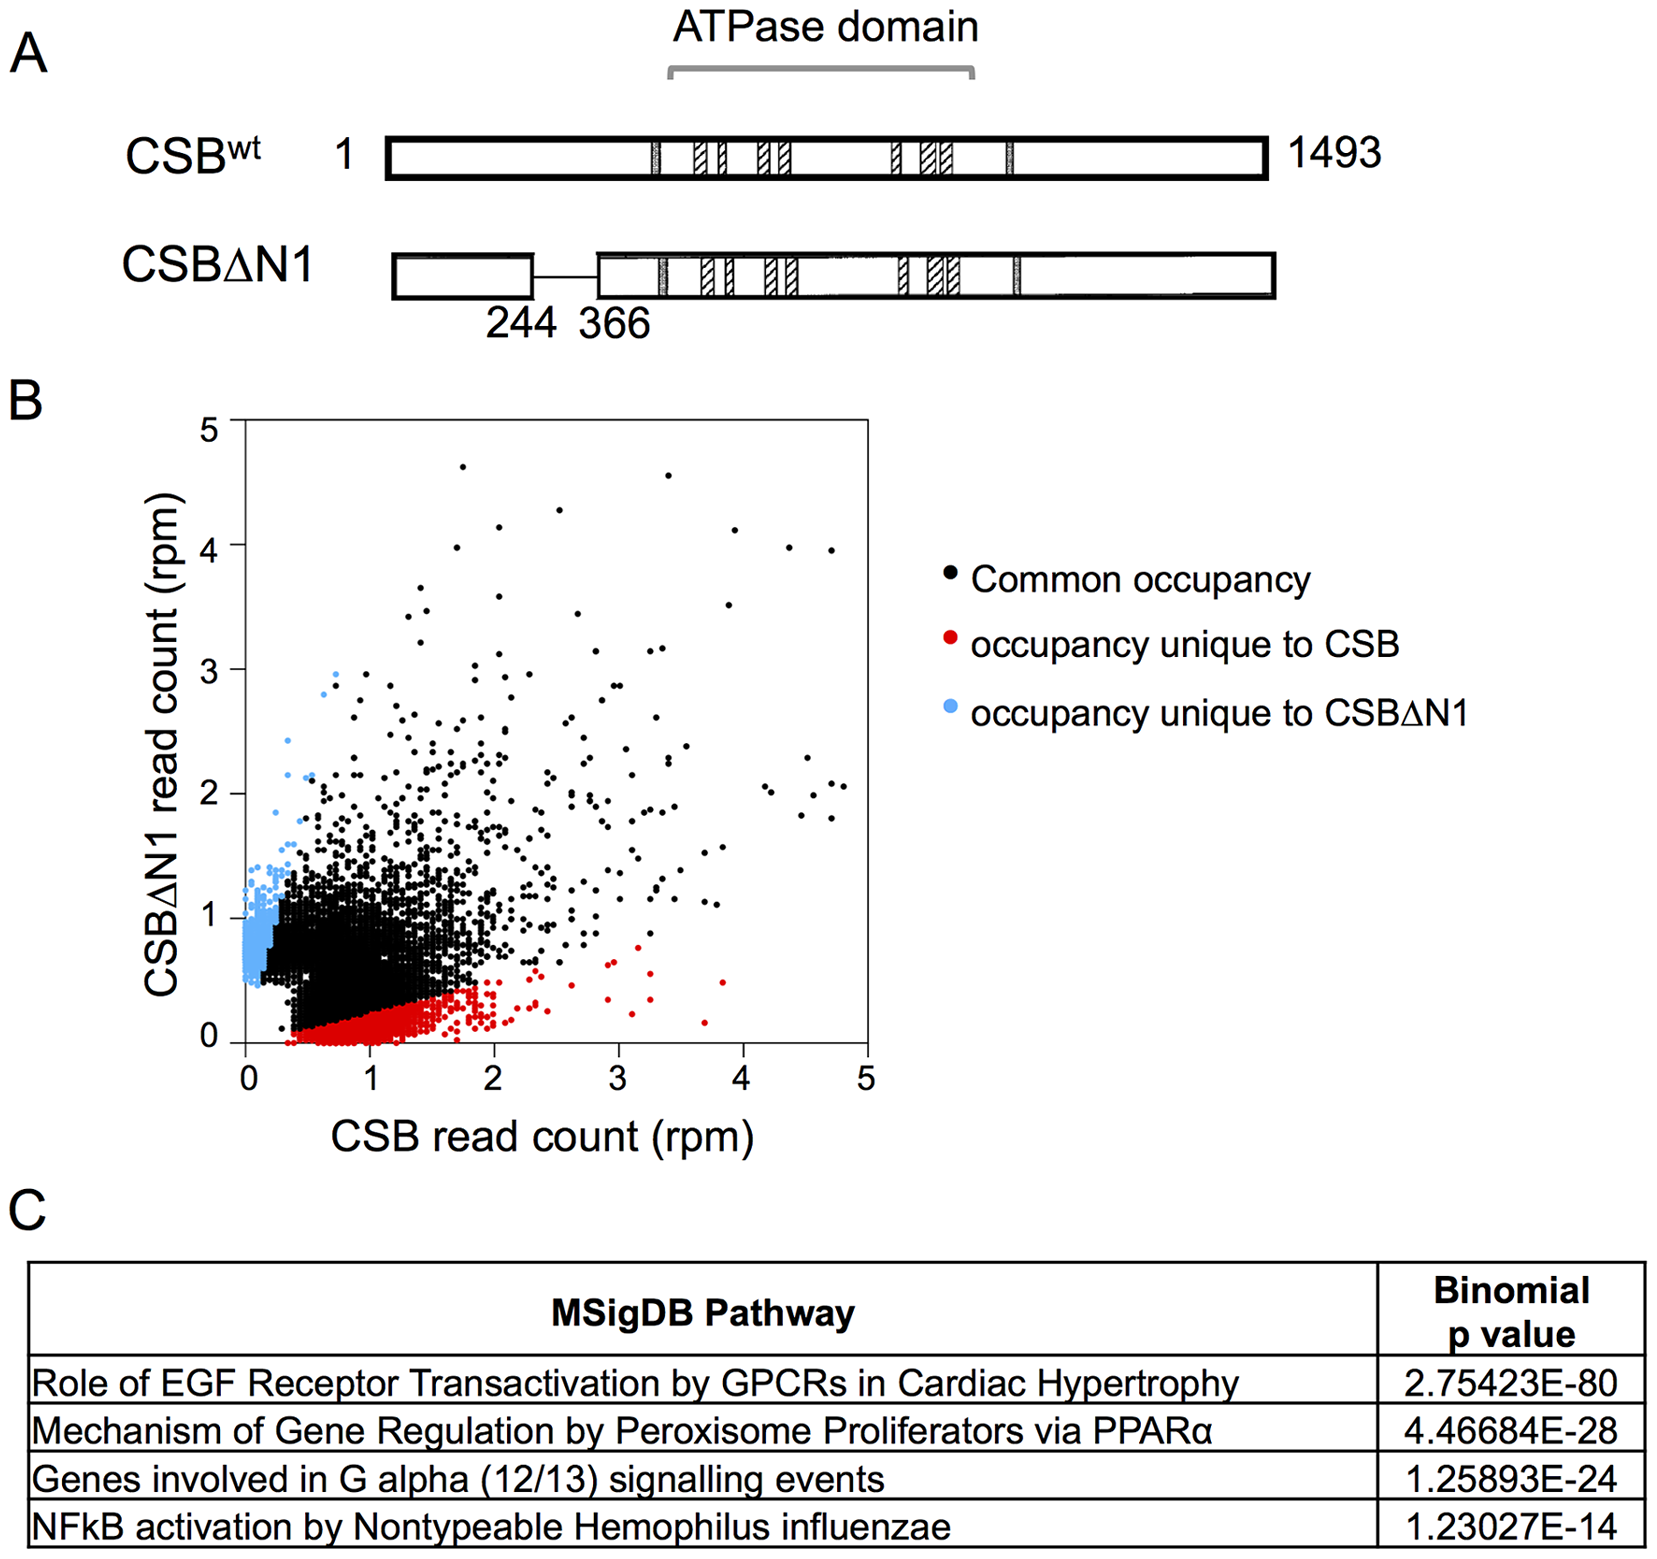 Overview of CSB and CSBΔN1 ChIP-seq data.